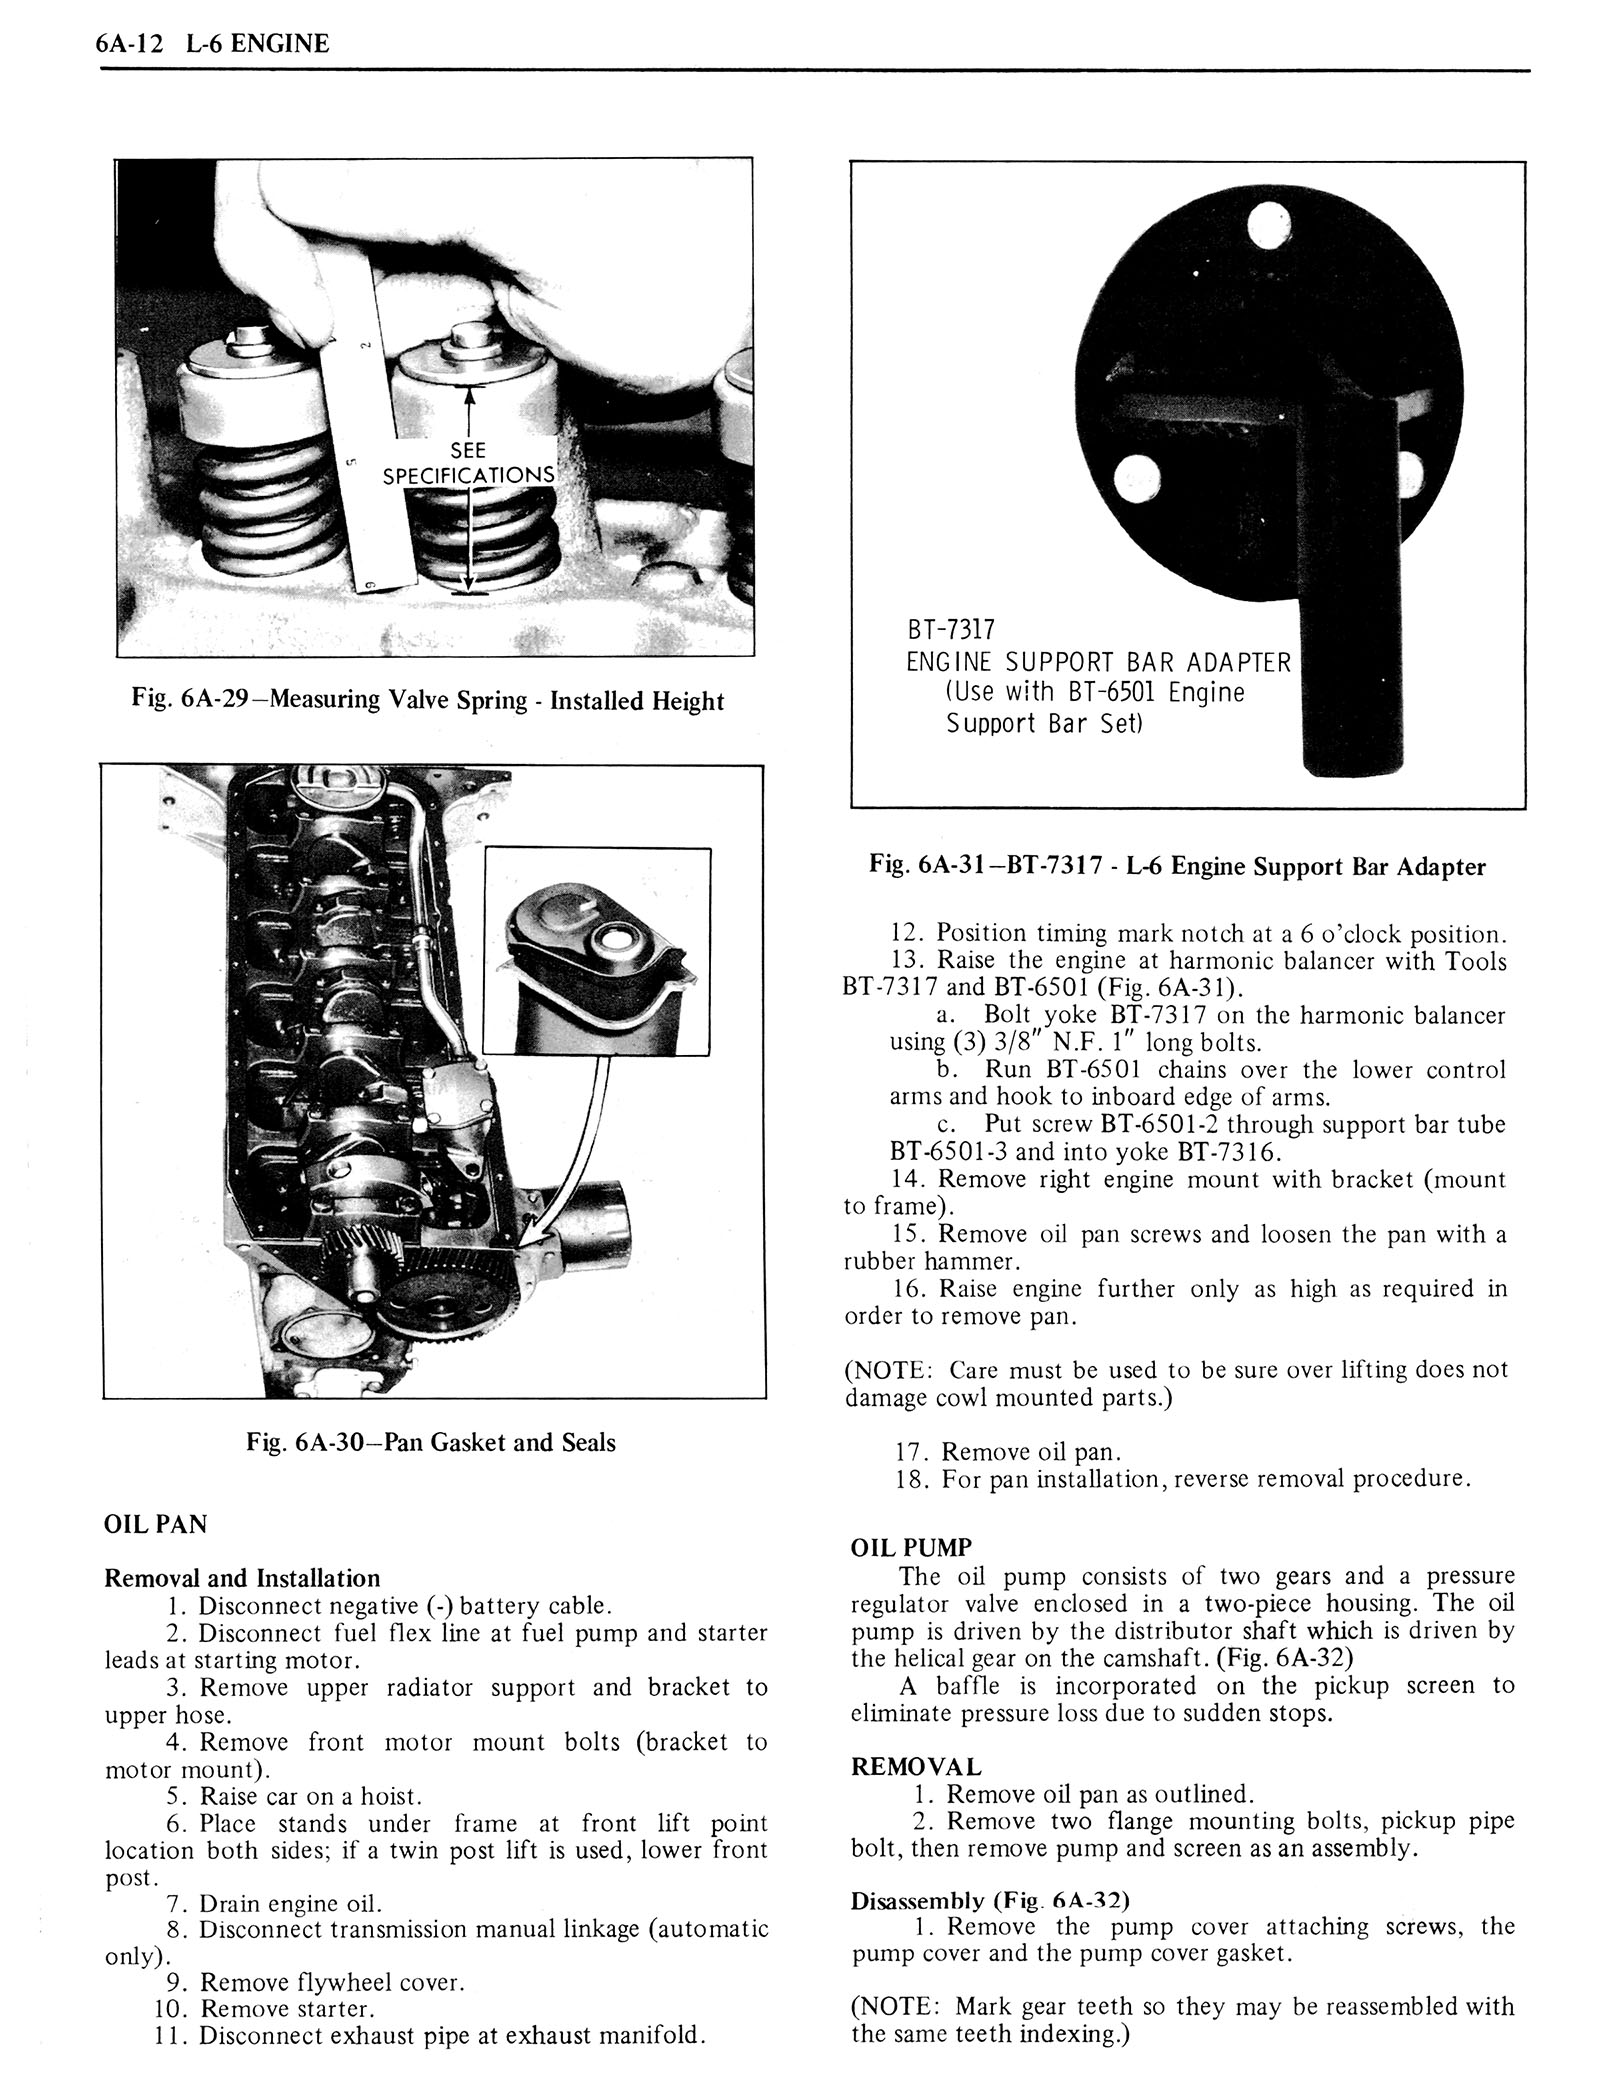 1976 Oldsmobile Service Manual page 409 of 1390